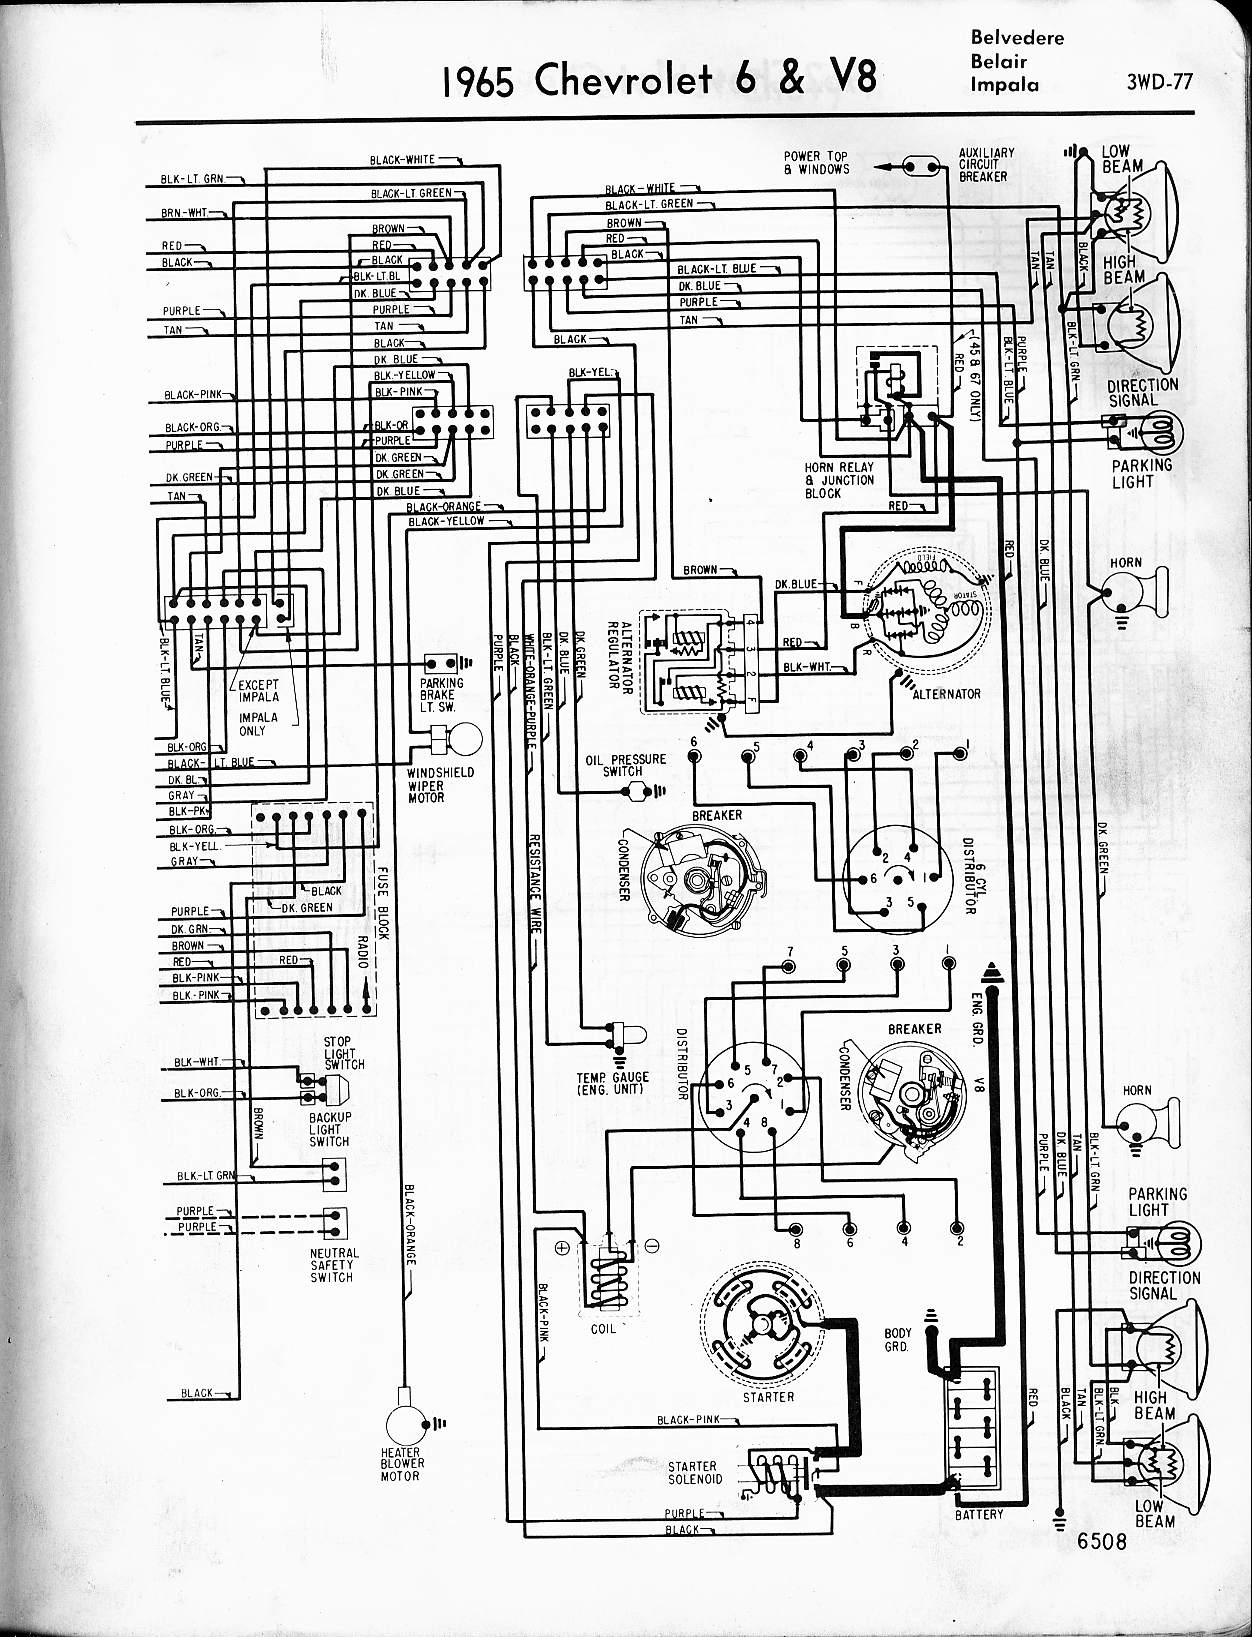 1965 Chevy El Camino Overheating Fix together with 1968 Corvette Wiring Diagram For Ac additionally Wiring likewise How to additionally Wiring Diagram For 1966 Plymouth Fury. on 1970 chevelle engine wiring diagram